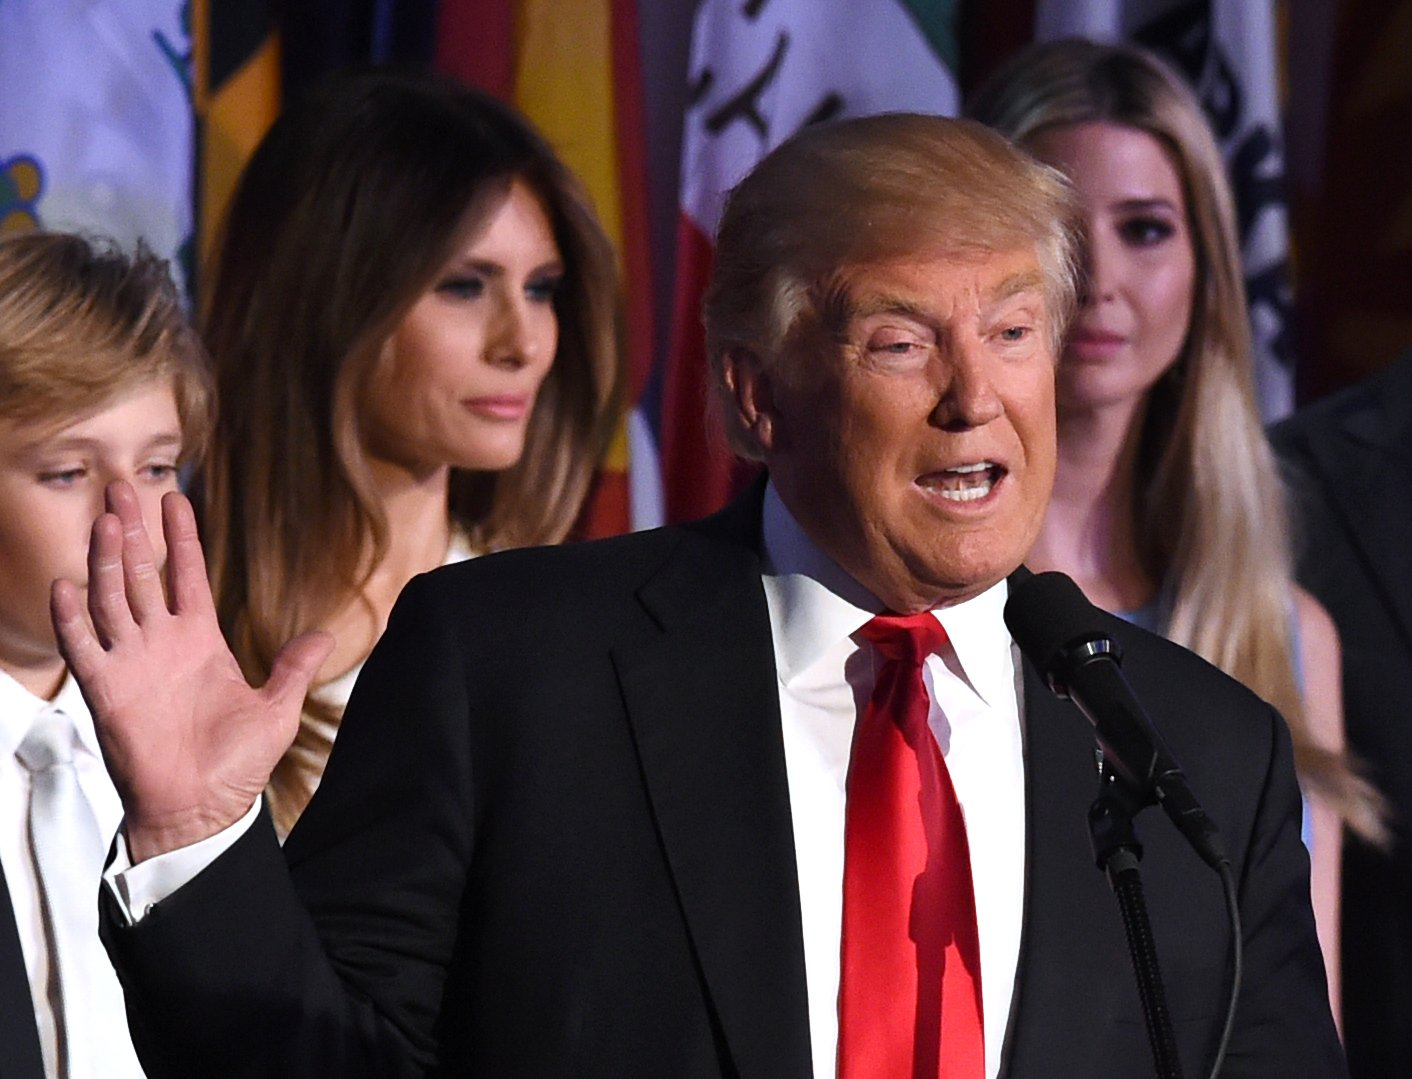 US election 2016: What are Donald Trump's key policies?